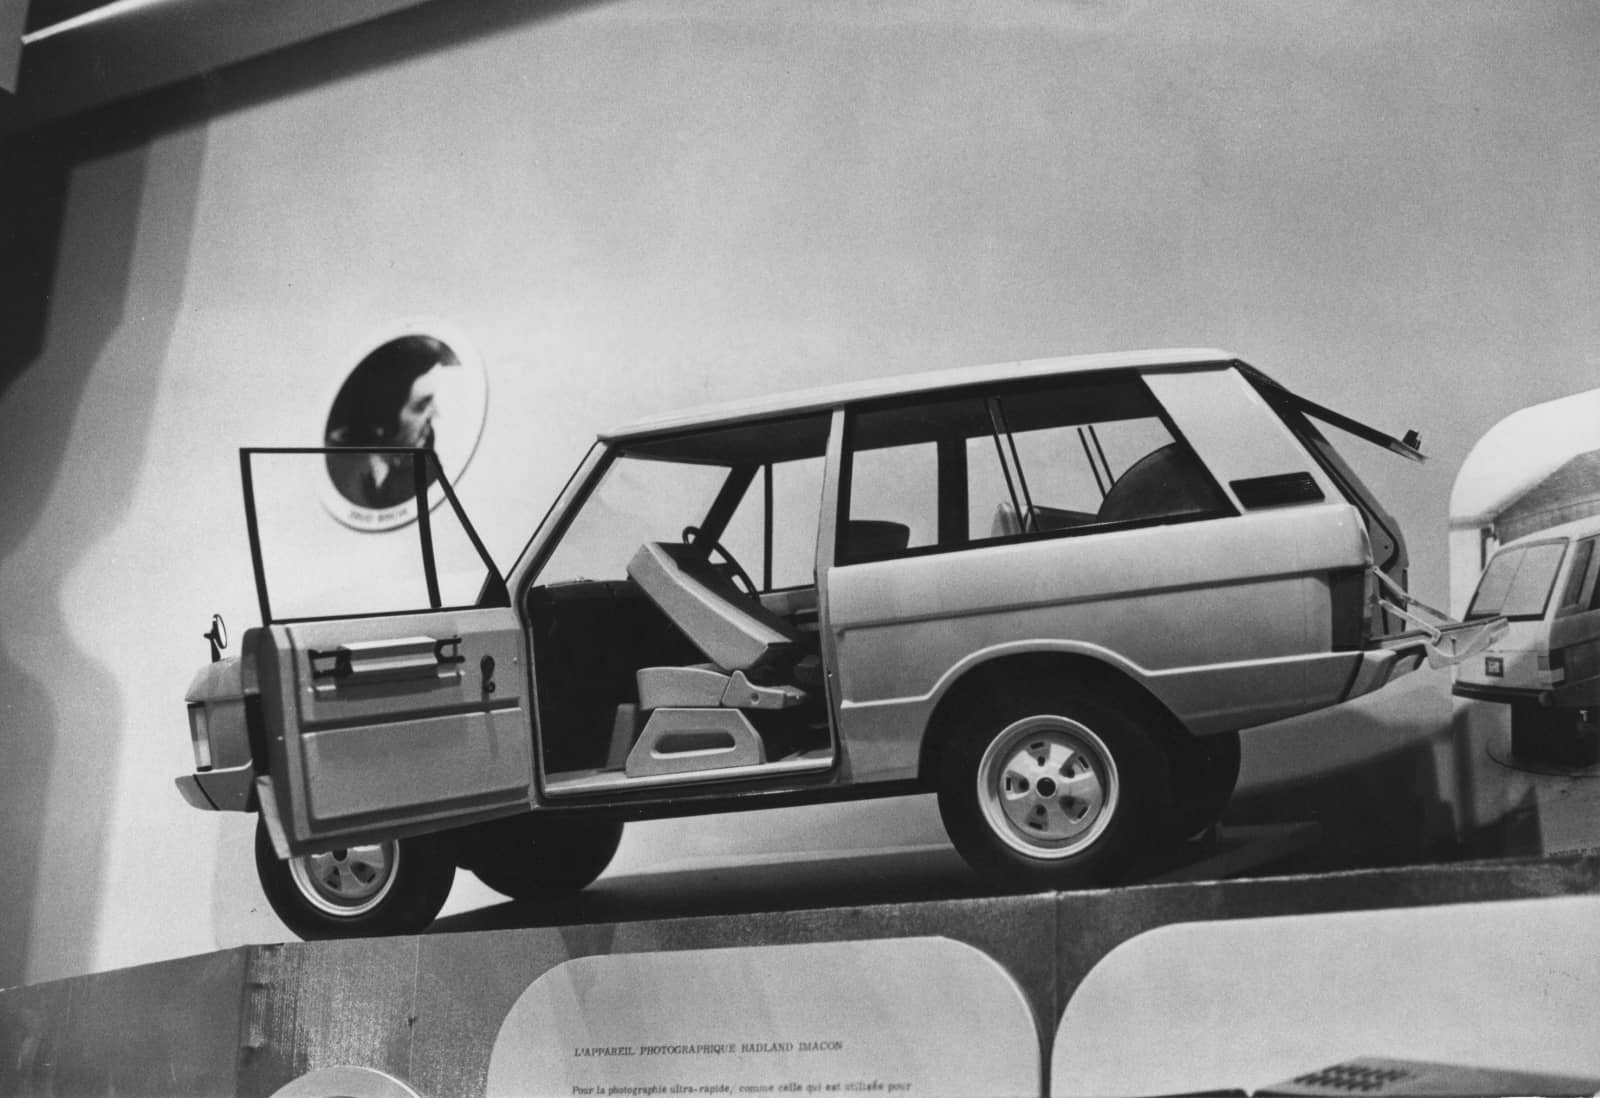 1970 Scale Range Rover on display in Louvre_02